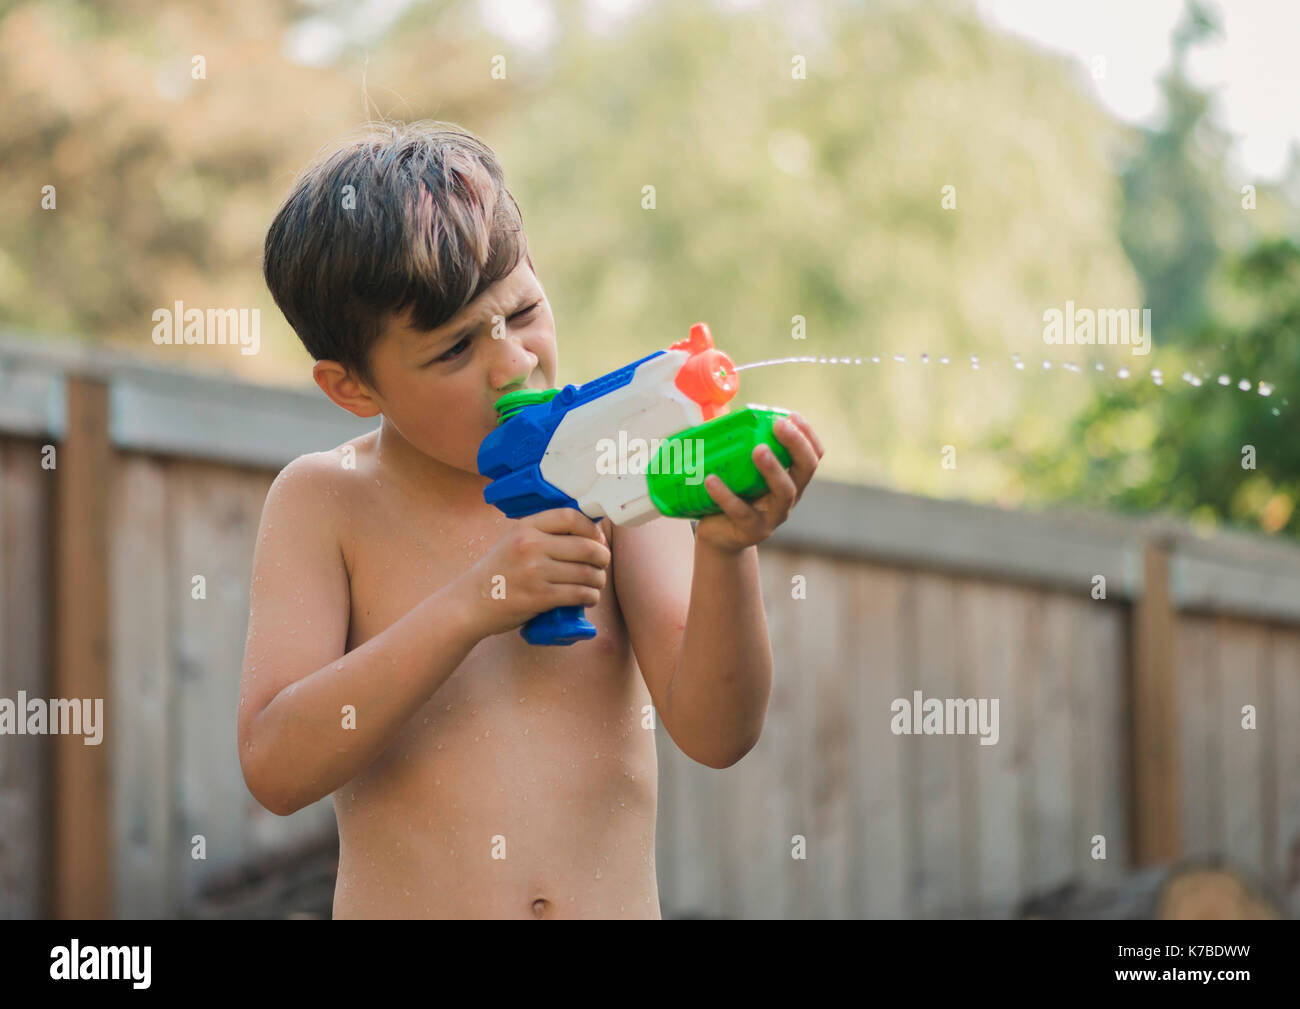 Boy aiming on something with squirt gun while standing in yard - Stock Image